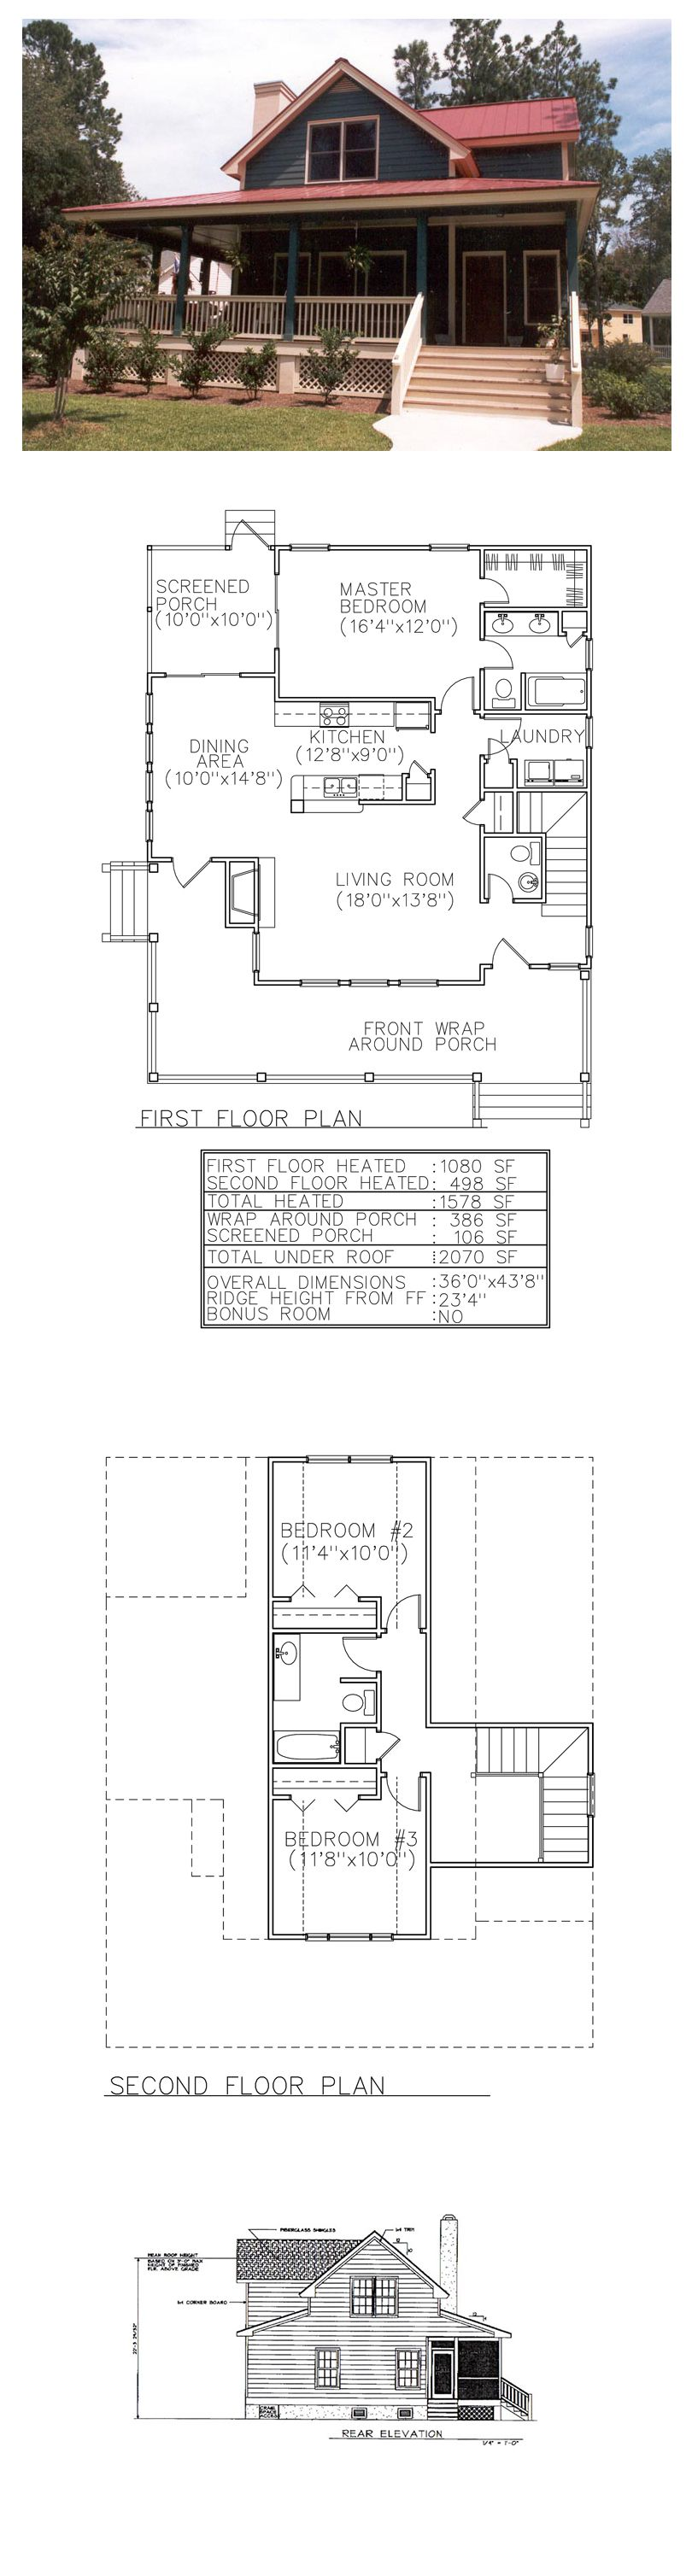 Country style cool house plan id chp total living area